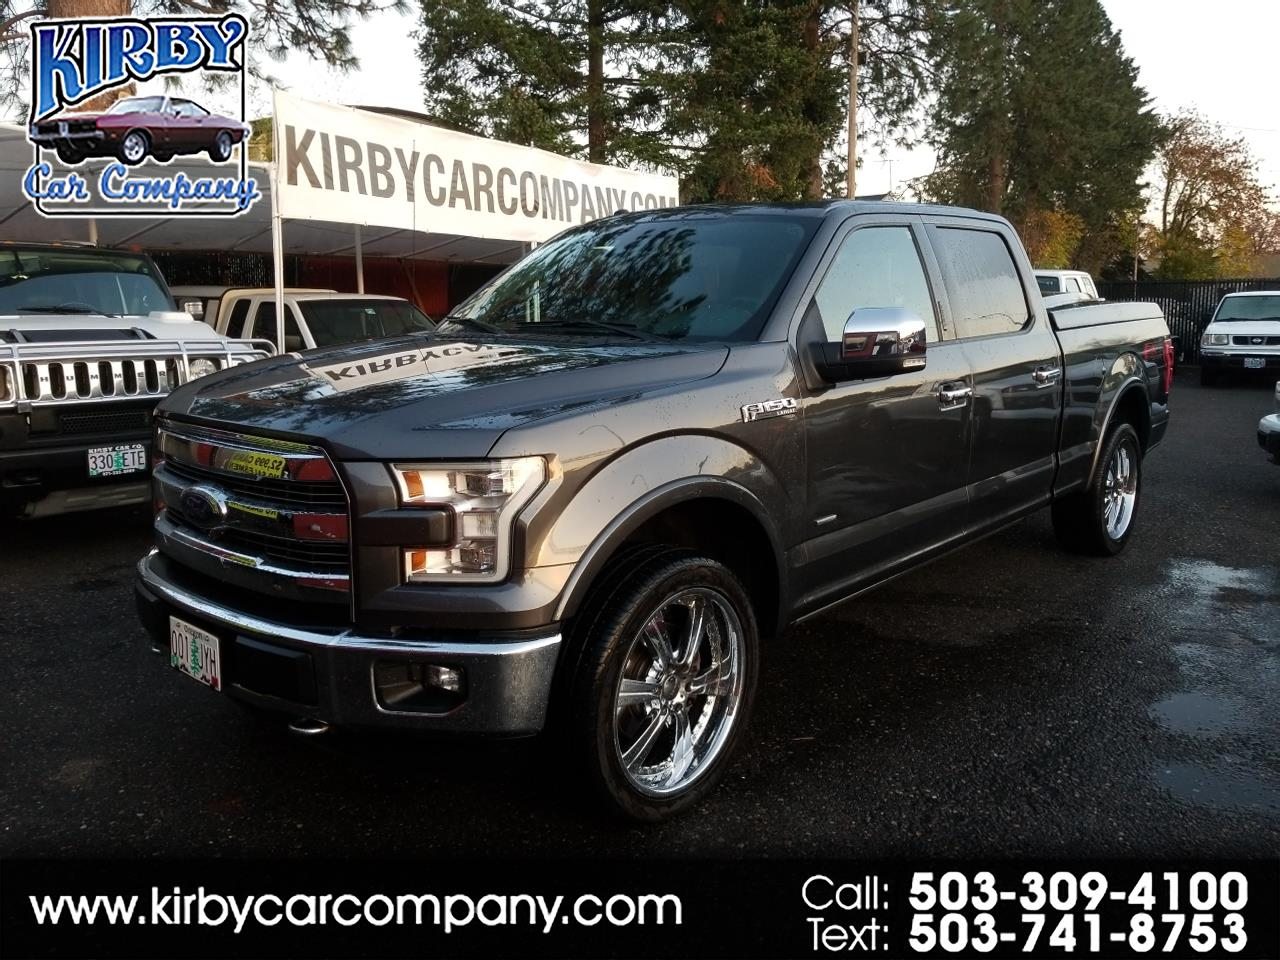 2015 Ford F-150 SuperCrew 4WD Lariat 6.5 Ft Bed  EVERY OPTION!!